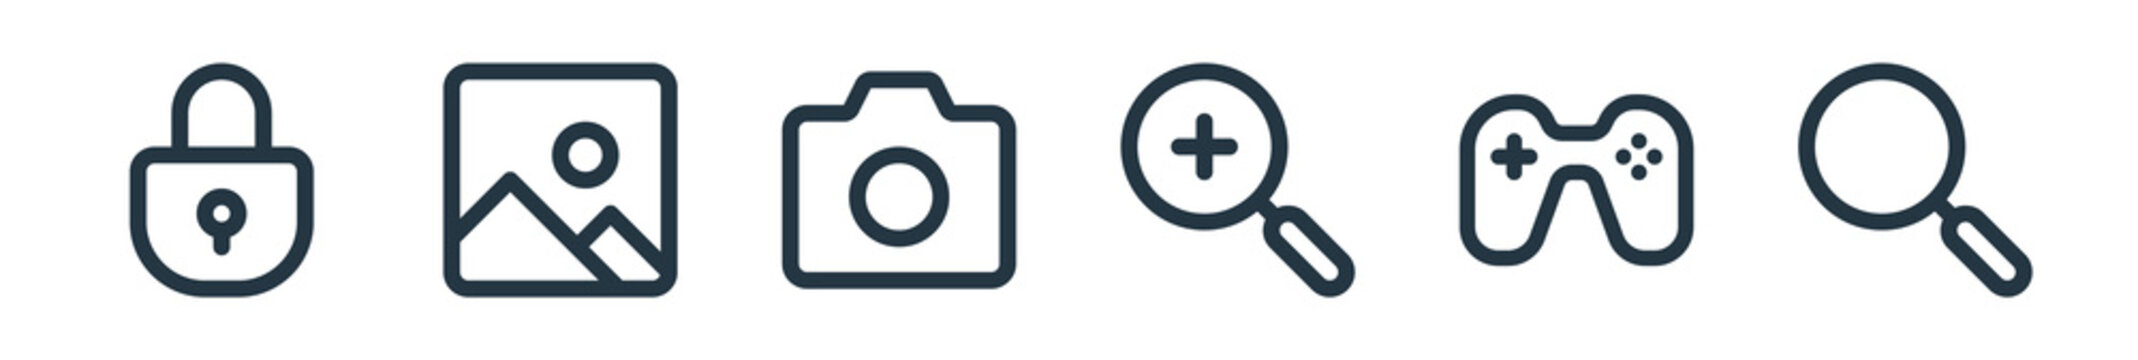 outline set of user interface line icons. linear vector icons such as locked, photo, camera, zoom in, games, search. vector illustration.